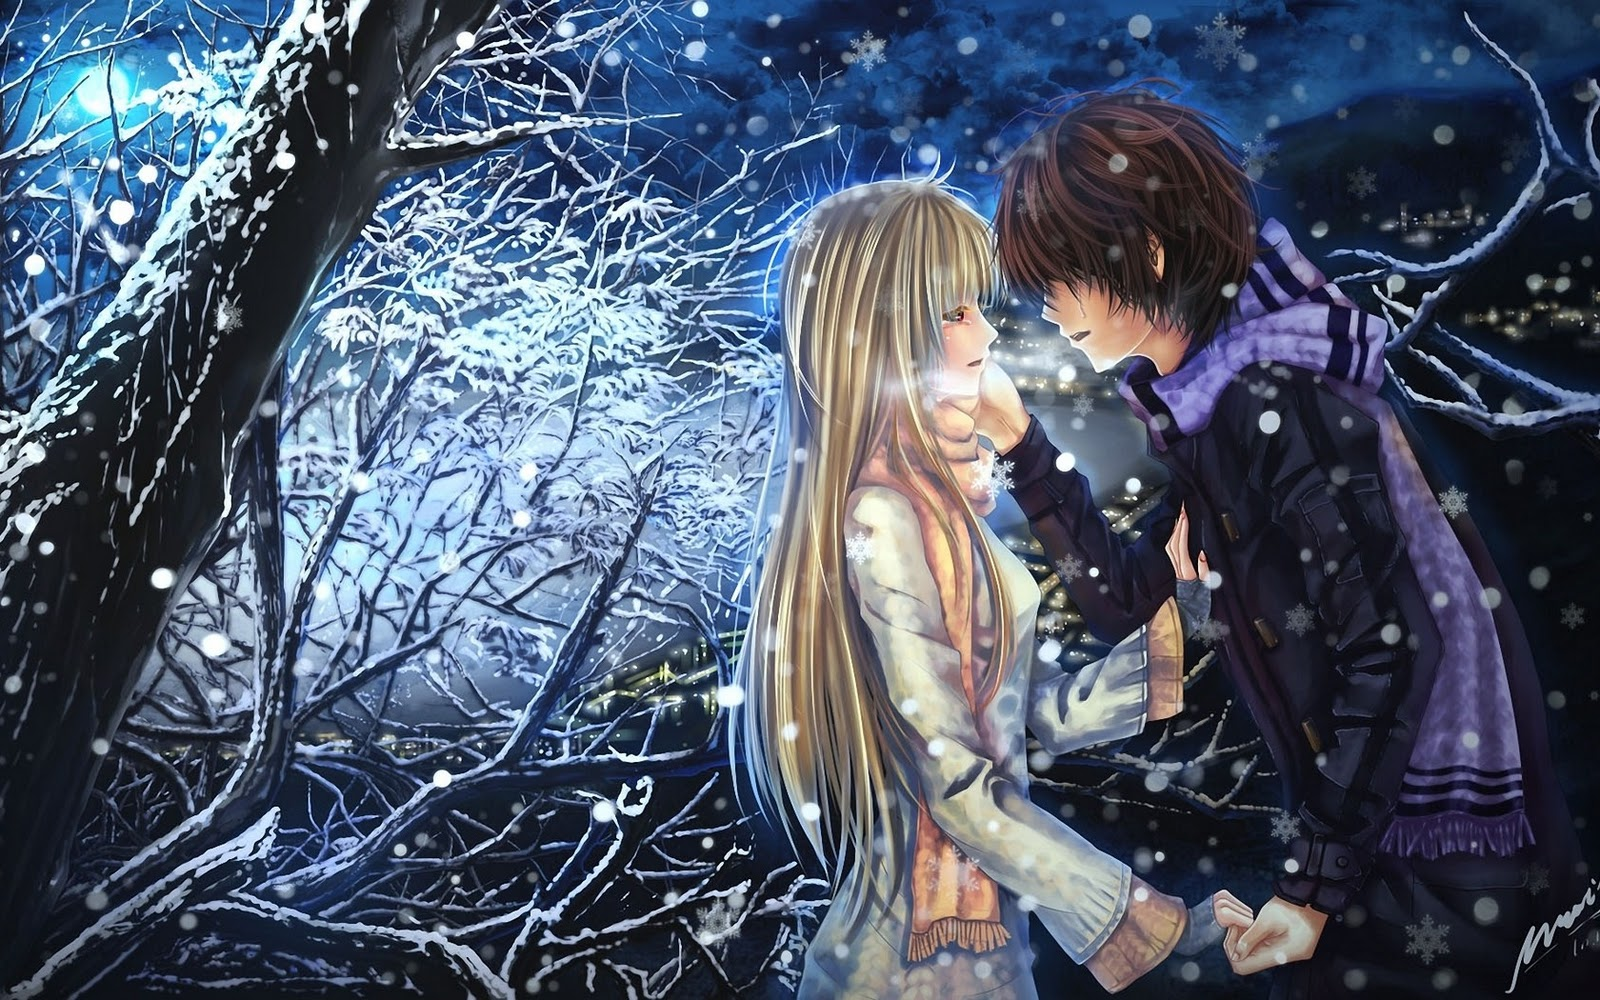 Hd Love couple Wallpaper For Pc : A2Z Wallpapers: Anime couples In Love Wallpapers